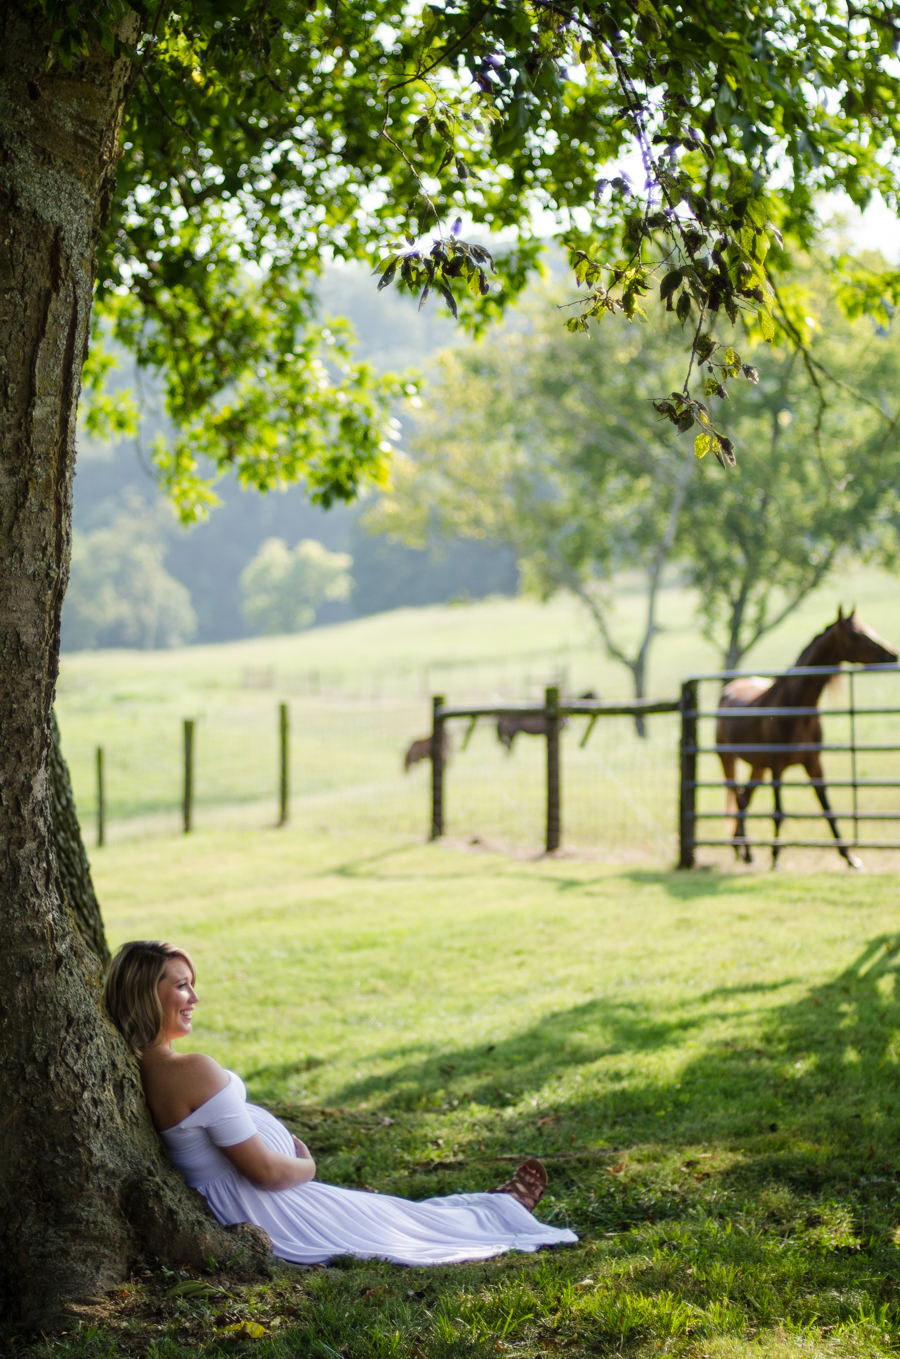 Cody & Kayrin Duke Maternity Session-9.jpg